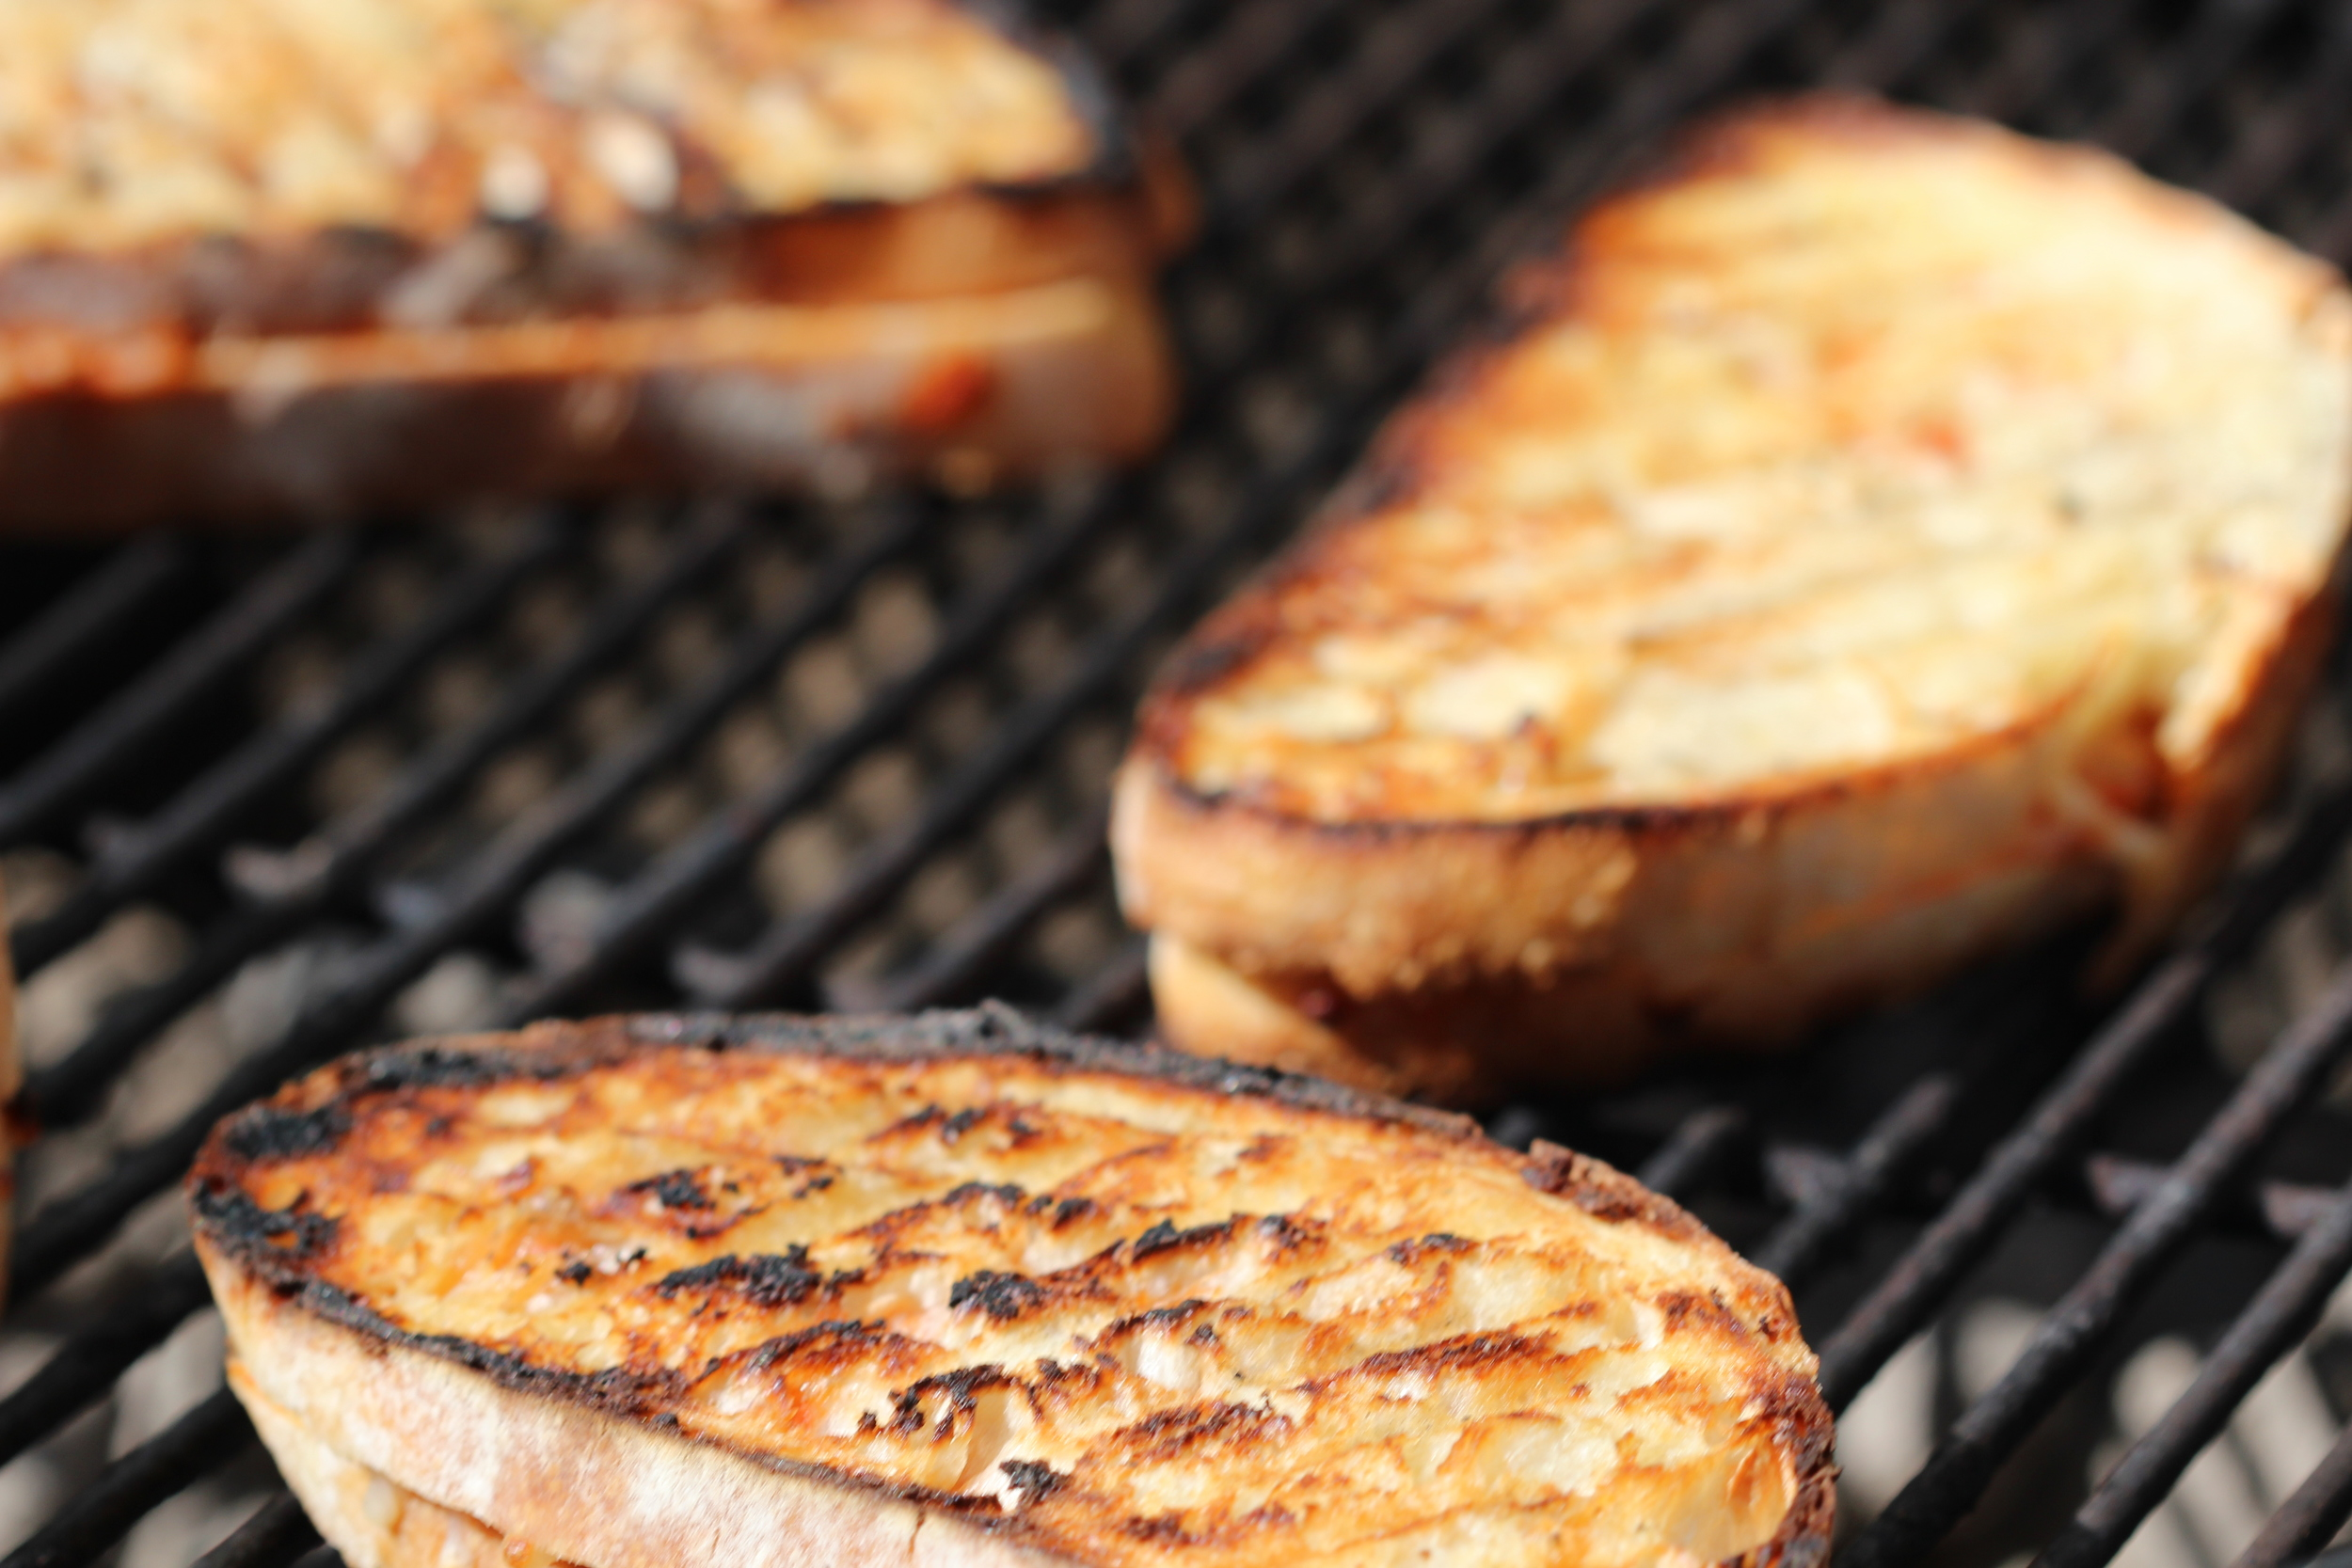 Grilling Smithfield Carnitas Grilled Cheese Sandwiches